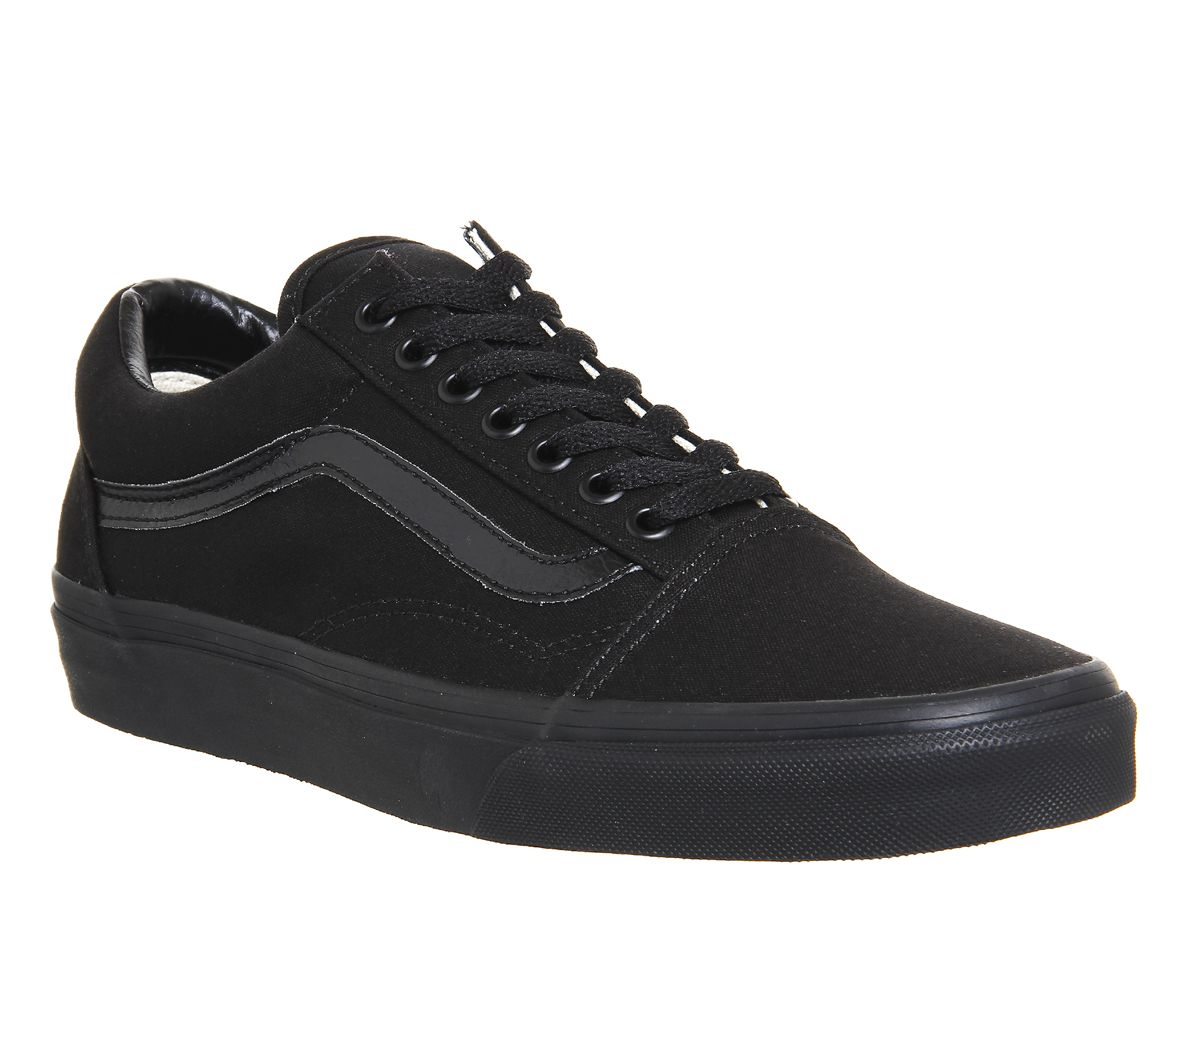 d53c57b9e61 Vans Old Skool Trainers Black - Unisex Sports